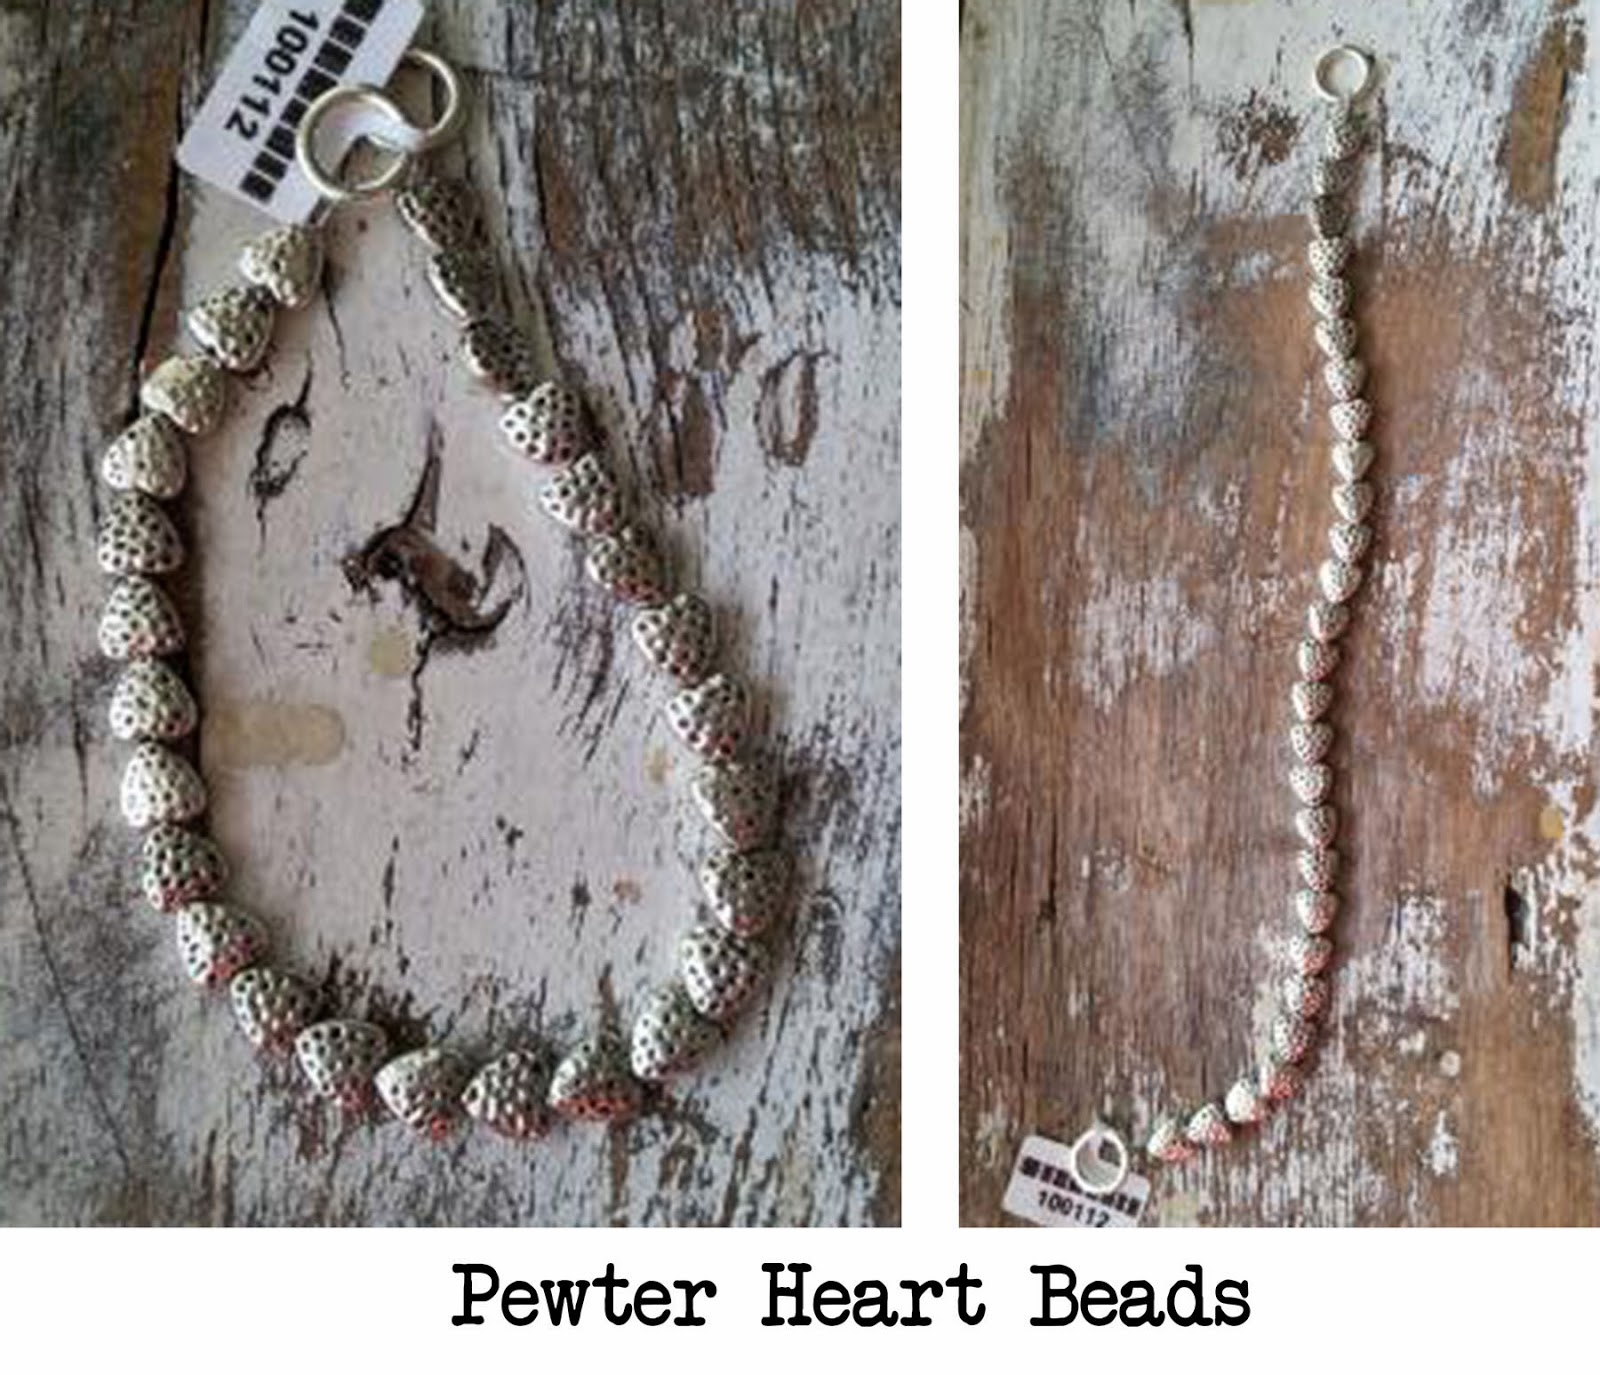 Pewter Heart Beads, DecoArt Metallic Lustre tutorial, Sue Allemand Art.com